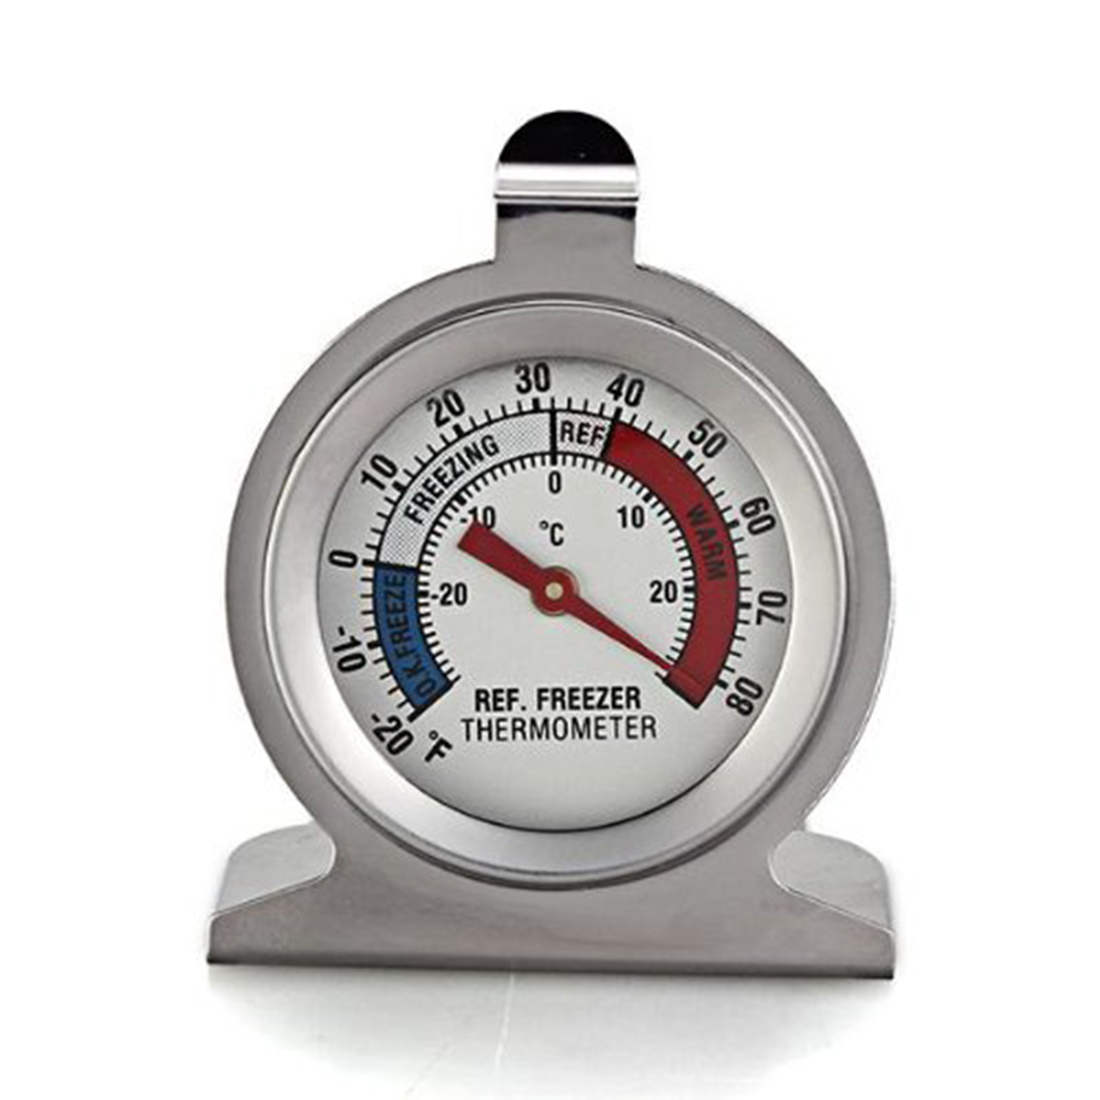 types of thermometer This handy dual scale mercury thermometer is a necessity for each home, office, clinic and hospital it has an inbuilt mercury-in-glass construction and dual reading in farenheight/celsius.